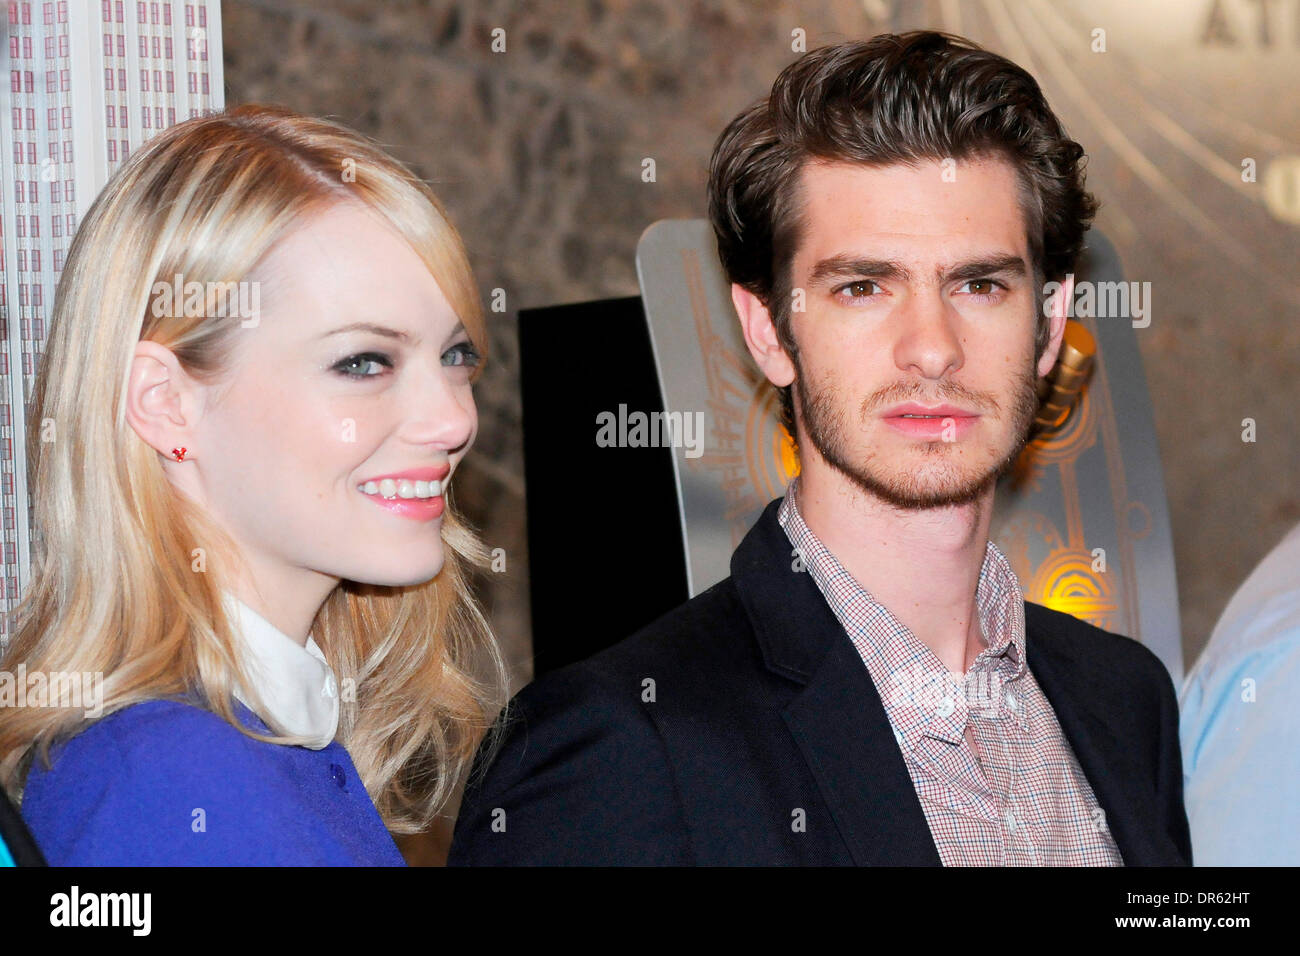 Emma Stone and Andrew Garfield The cast of 'The Amazing